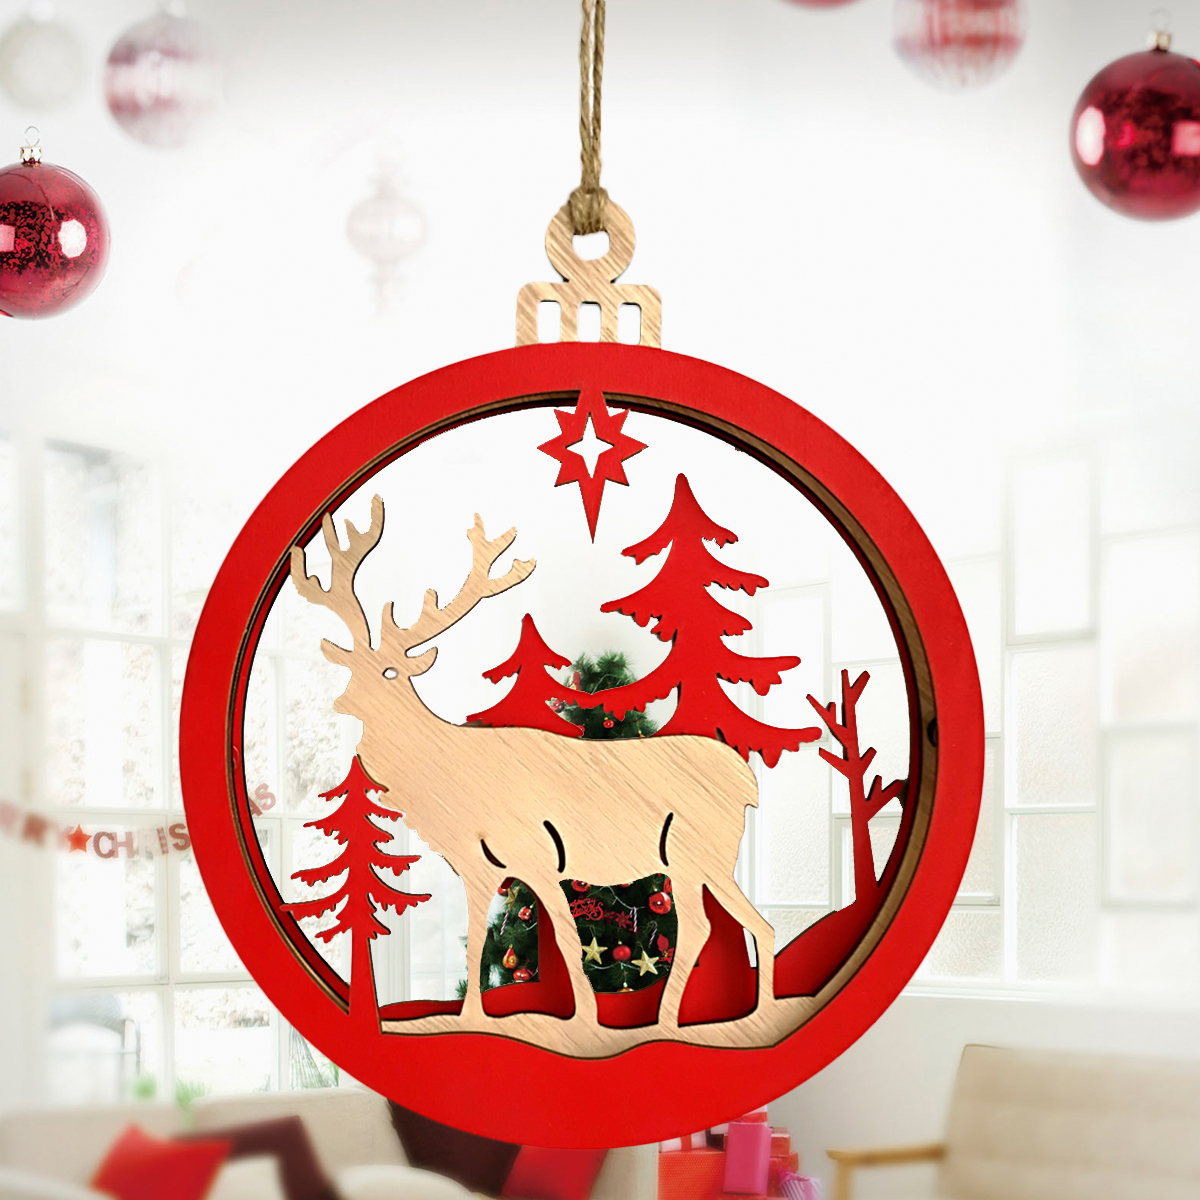 large wooden 3d pendant durable couples reindeer light bulb hanging decor supplies for christmas decorating wall fireplace in pendant drop ornaments from